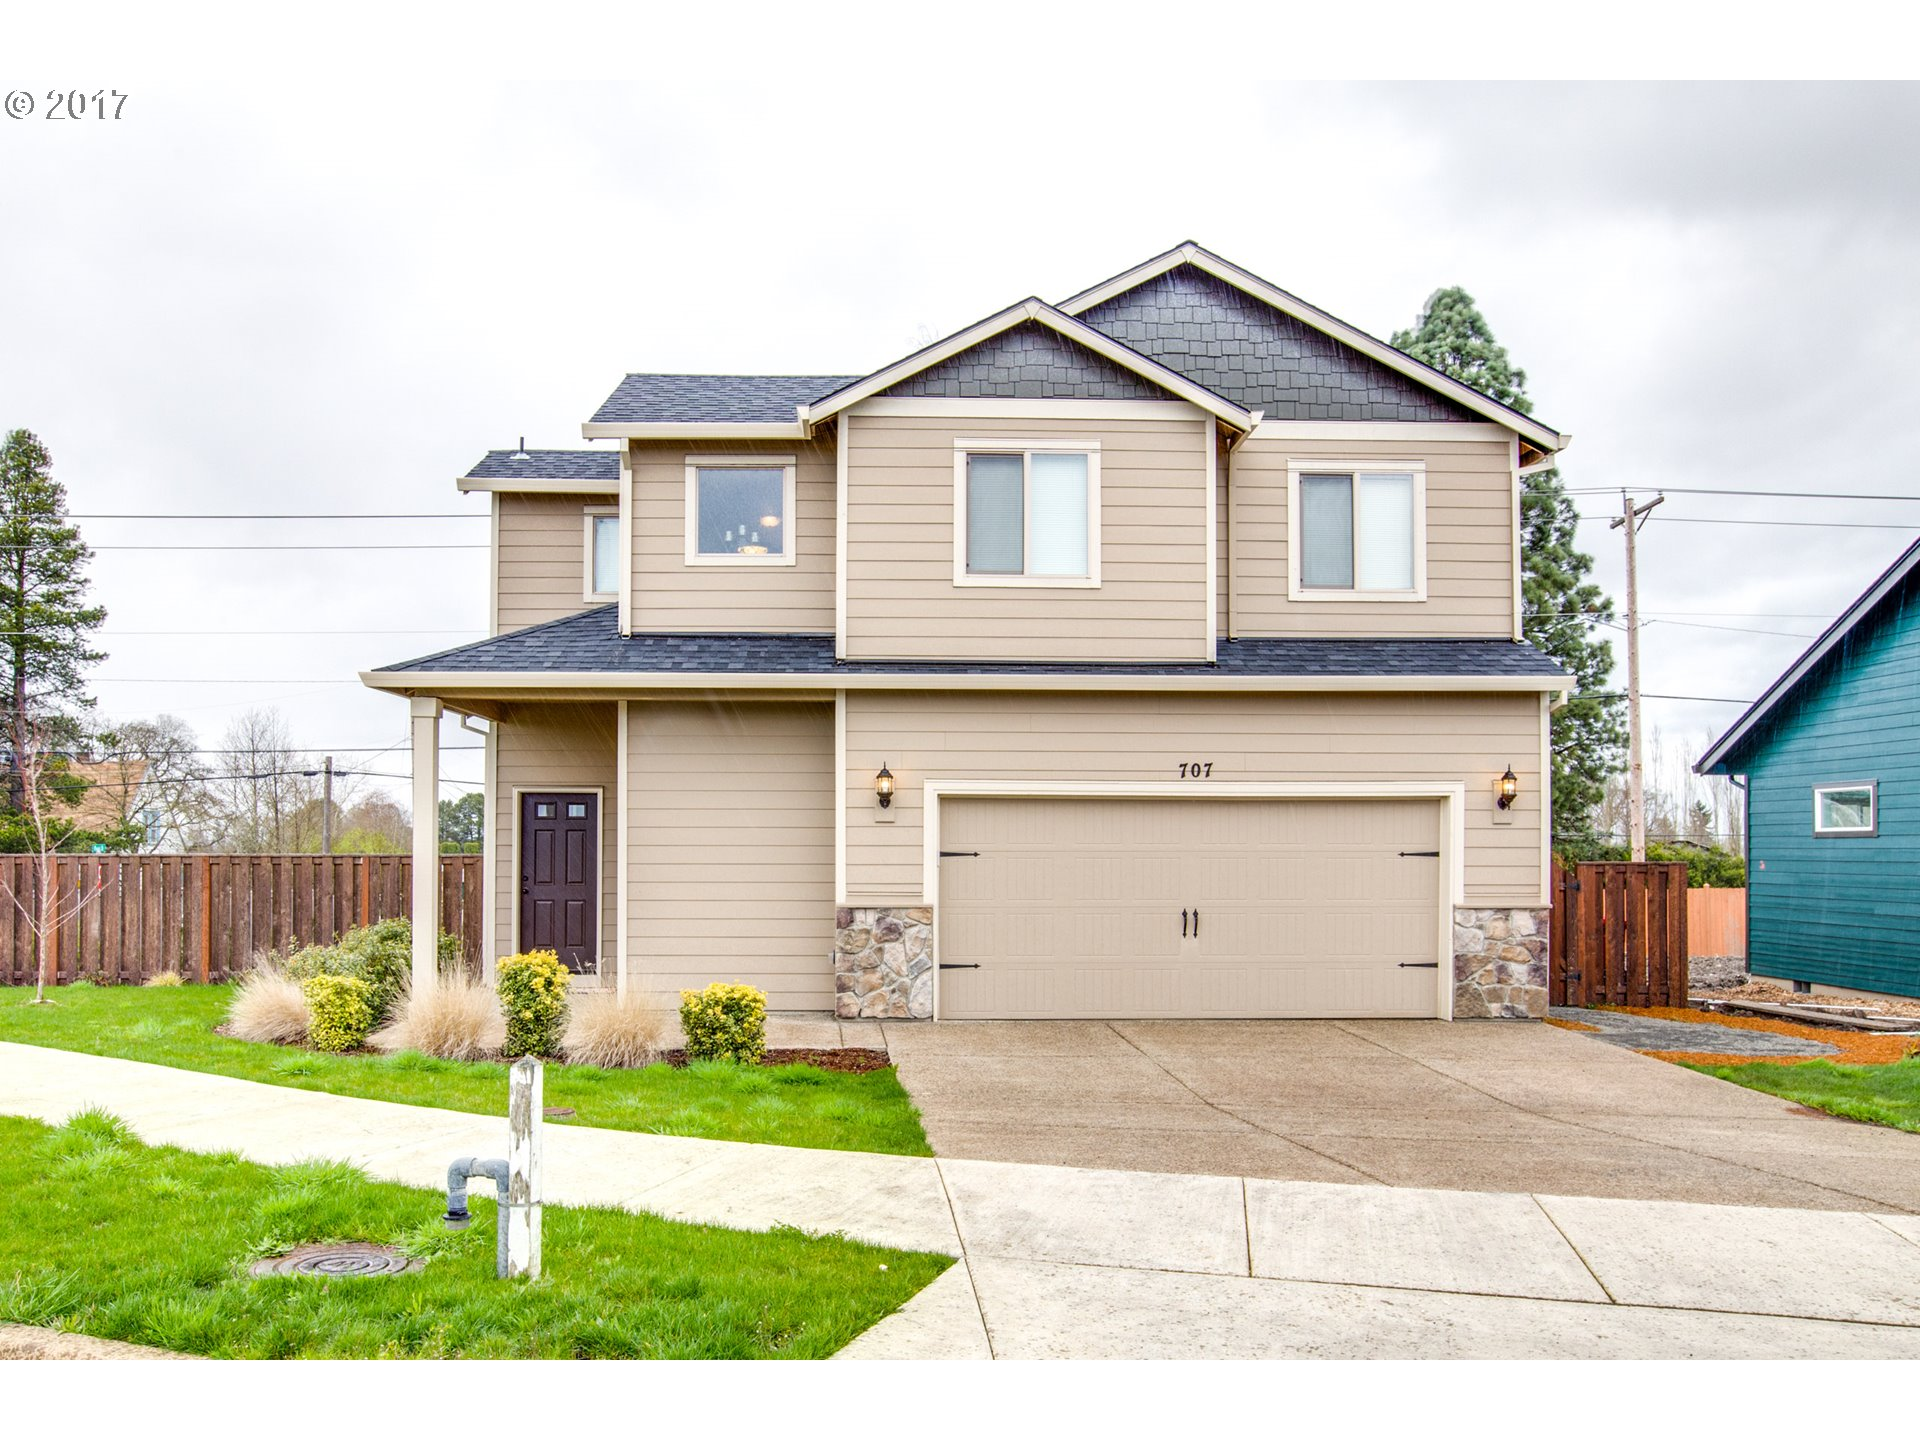 1538 sq. ft 3 bedrooms 2 bathrooms  House For Sale,Silverton, OR